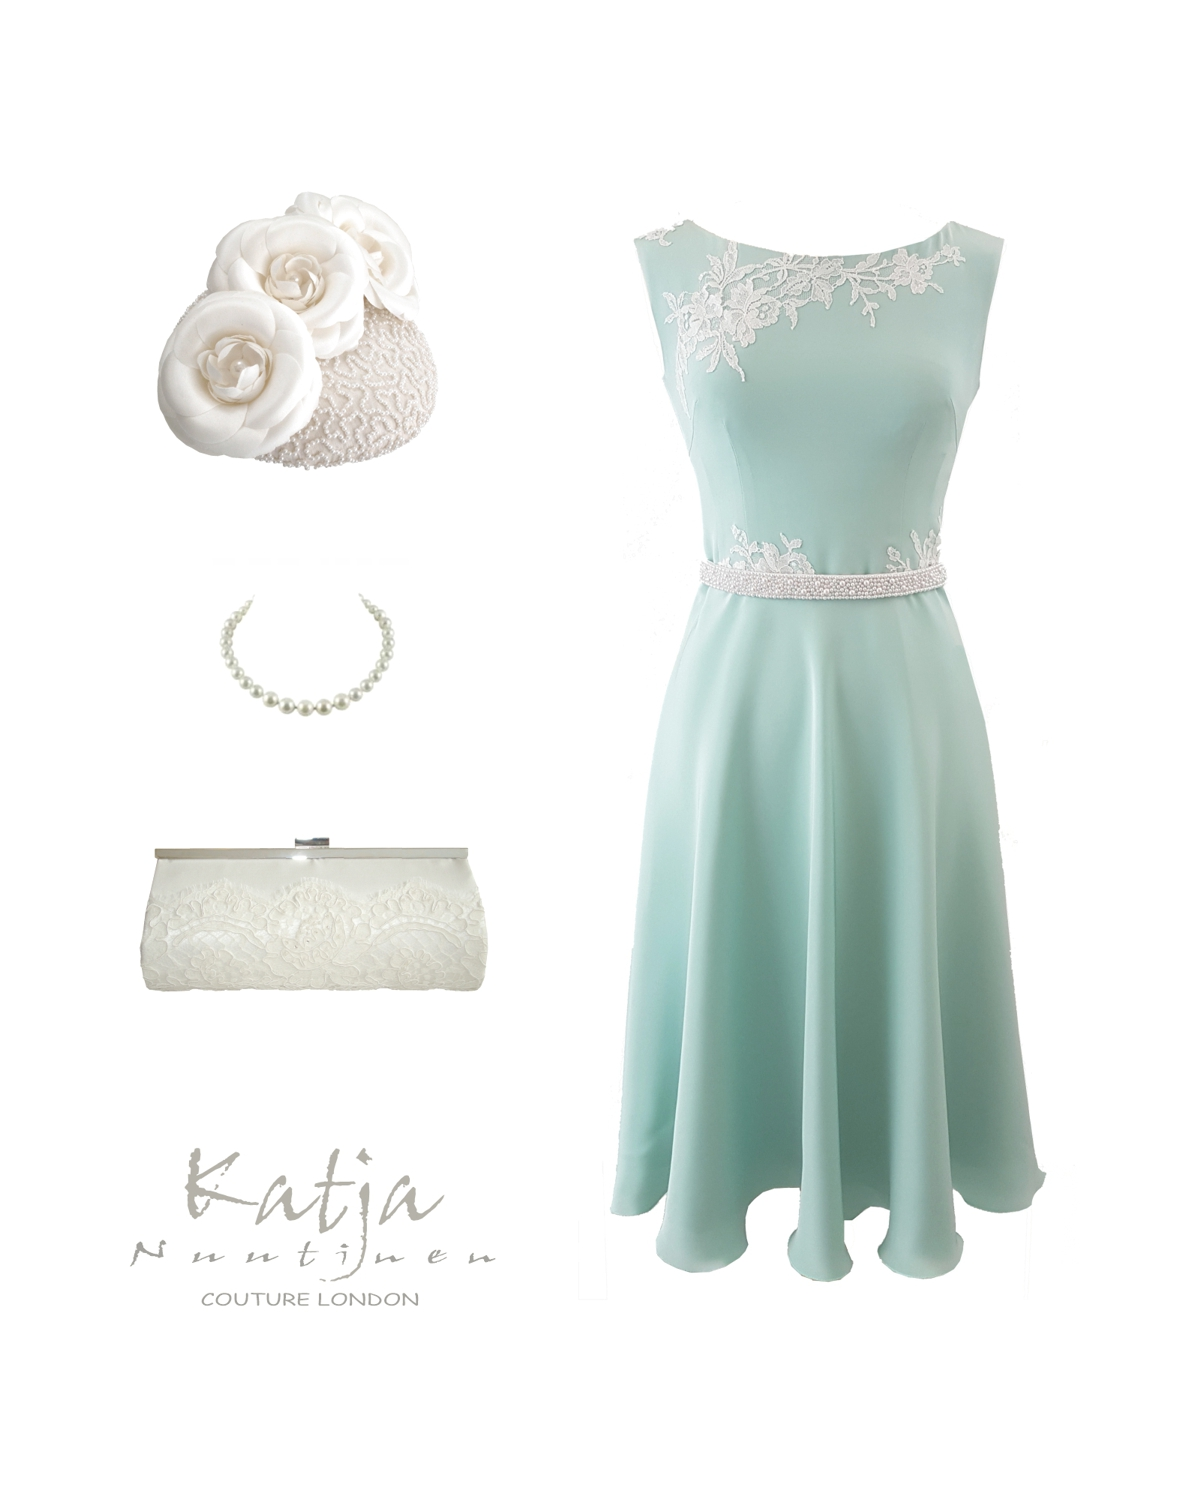 Designer outfit - mint green dress with lace, pillbox hat and lace clutch bag